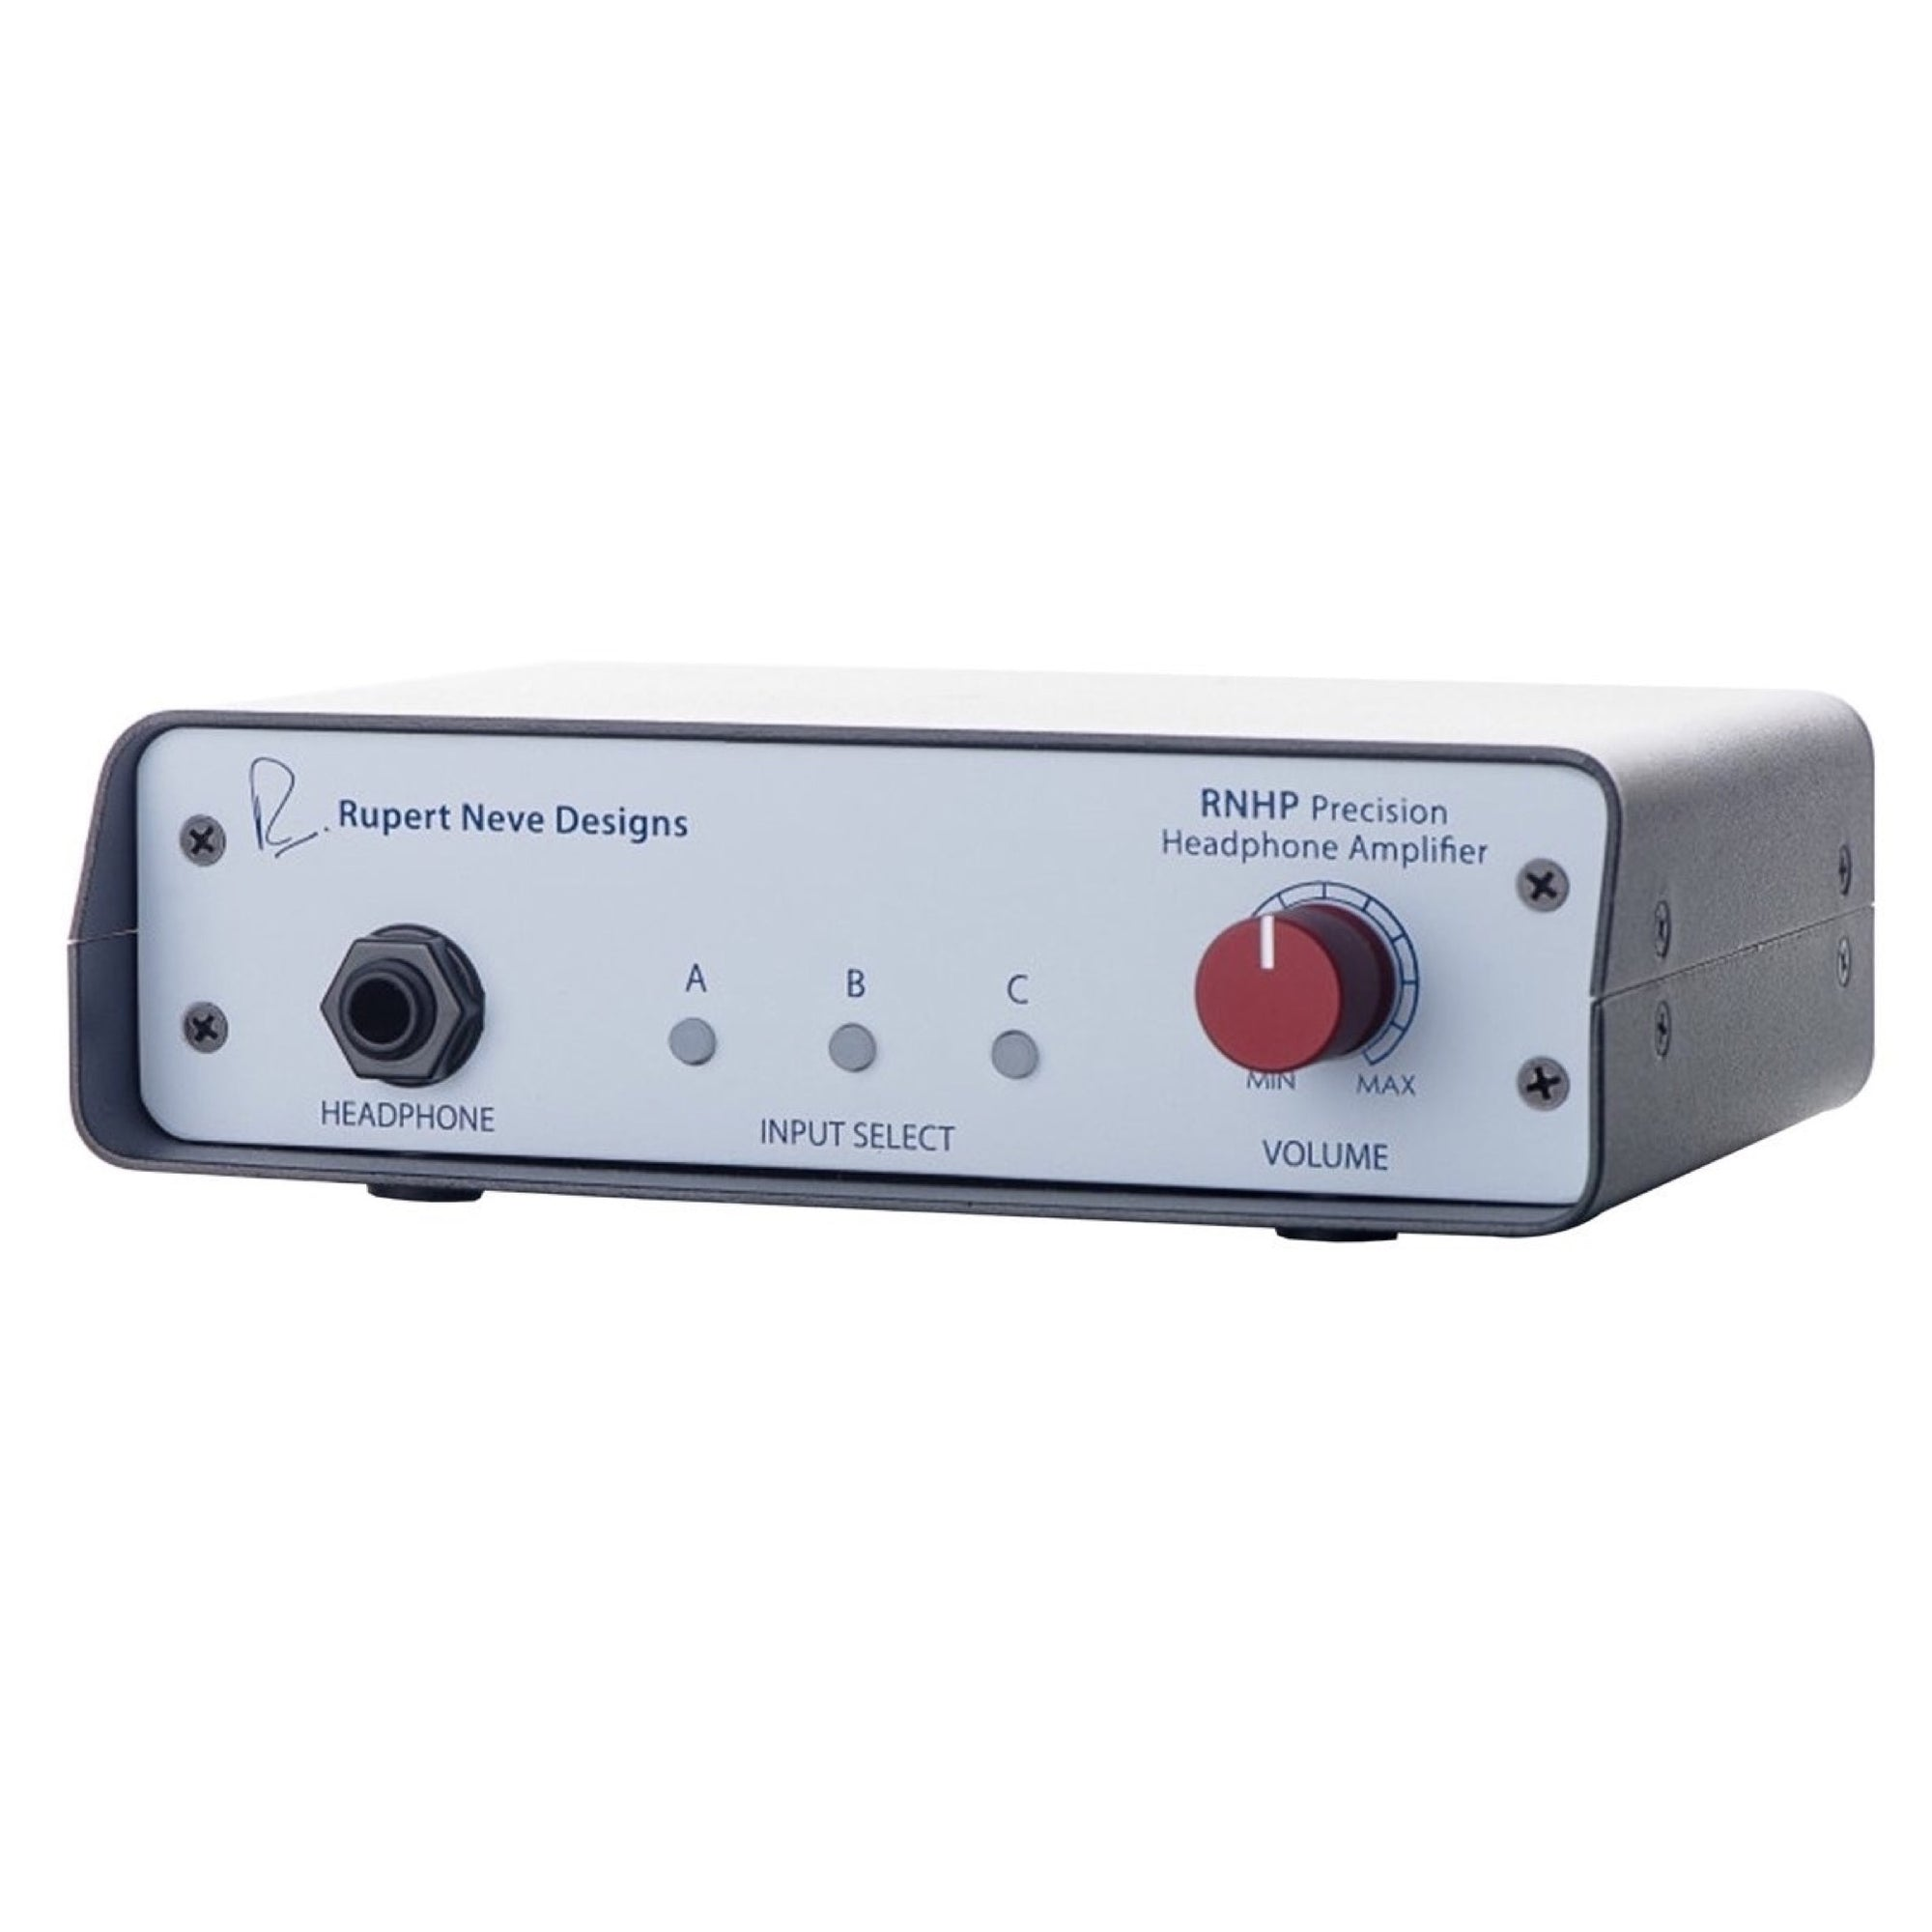 Rupert Neve Designs RNHP Precision Headphone Amplifier